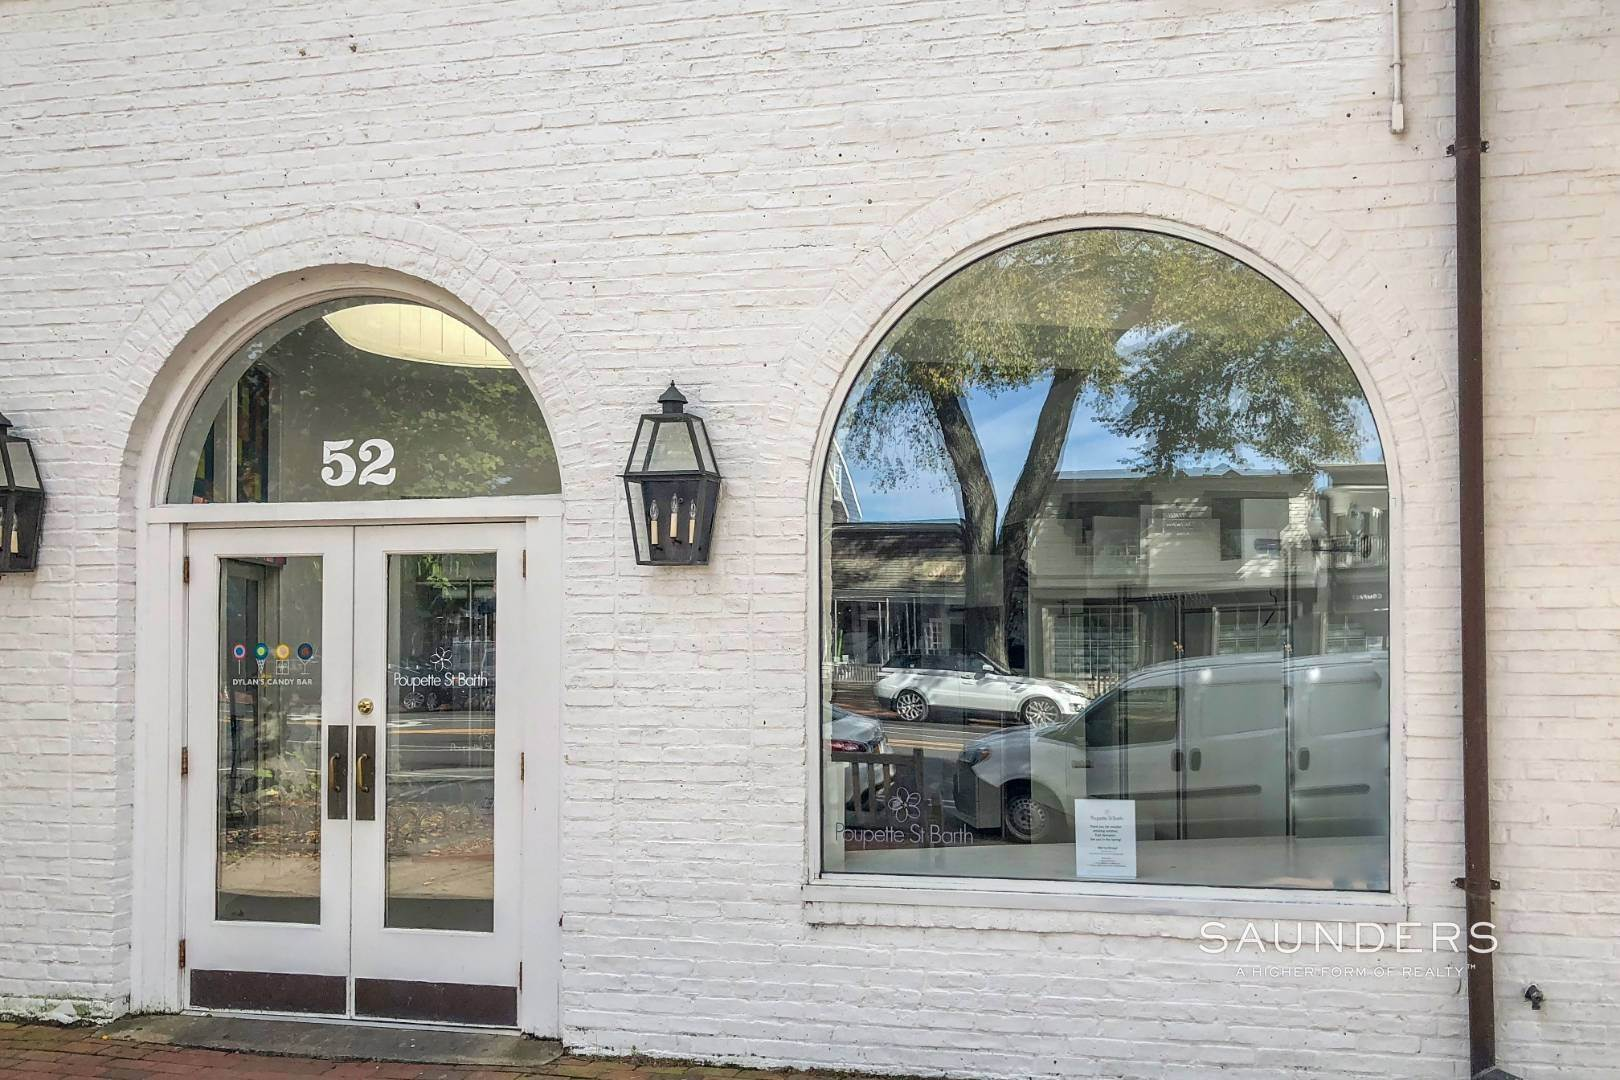 2. Commercial for Sale at East Hampton Village Retail For Sale- Investment Opportunity 52 Main Street, #2, East Hampton, East Hampton Town, NY 11937